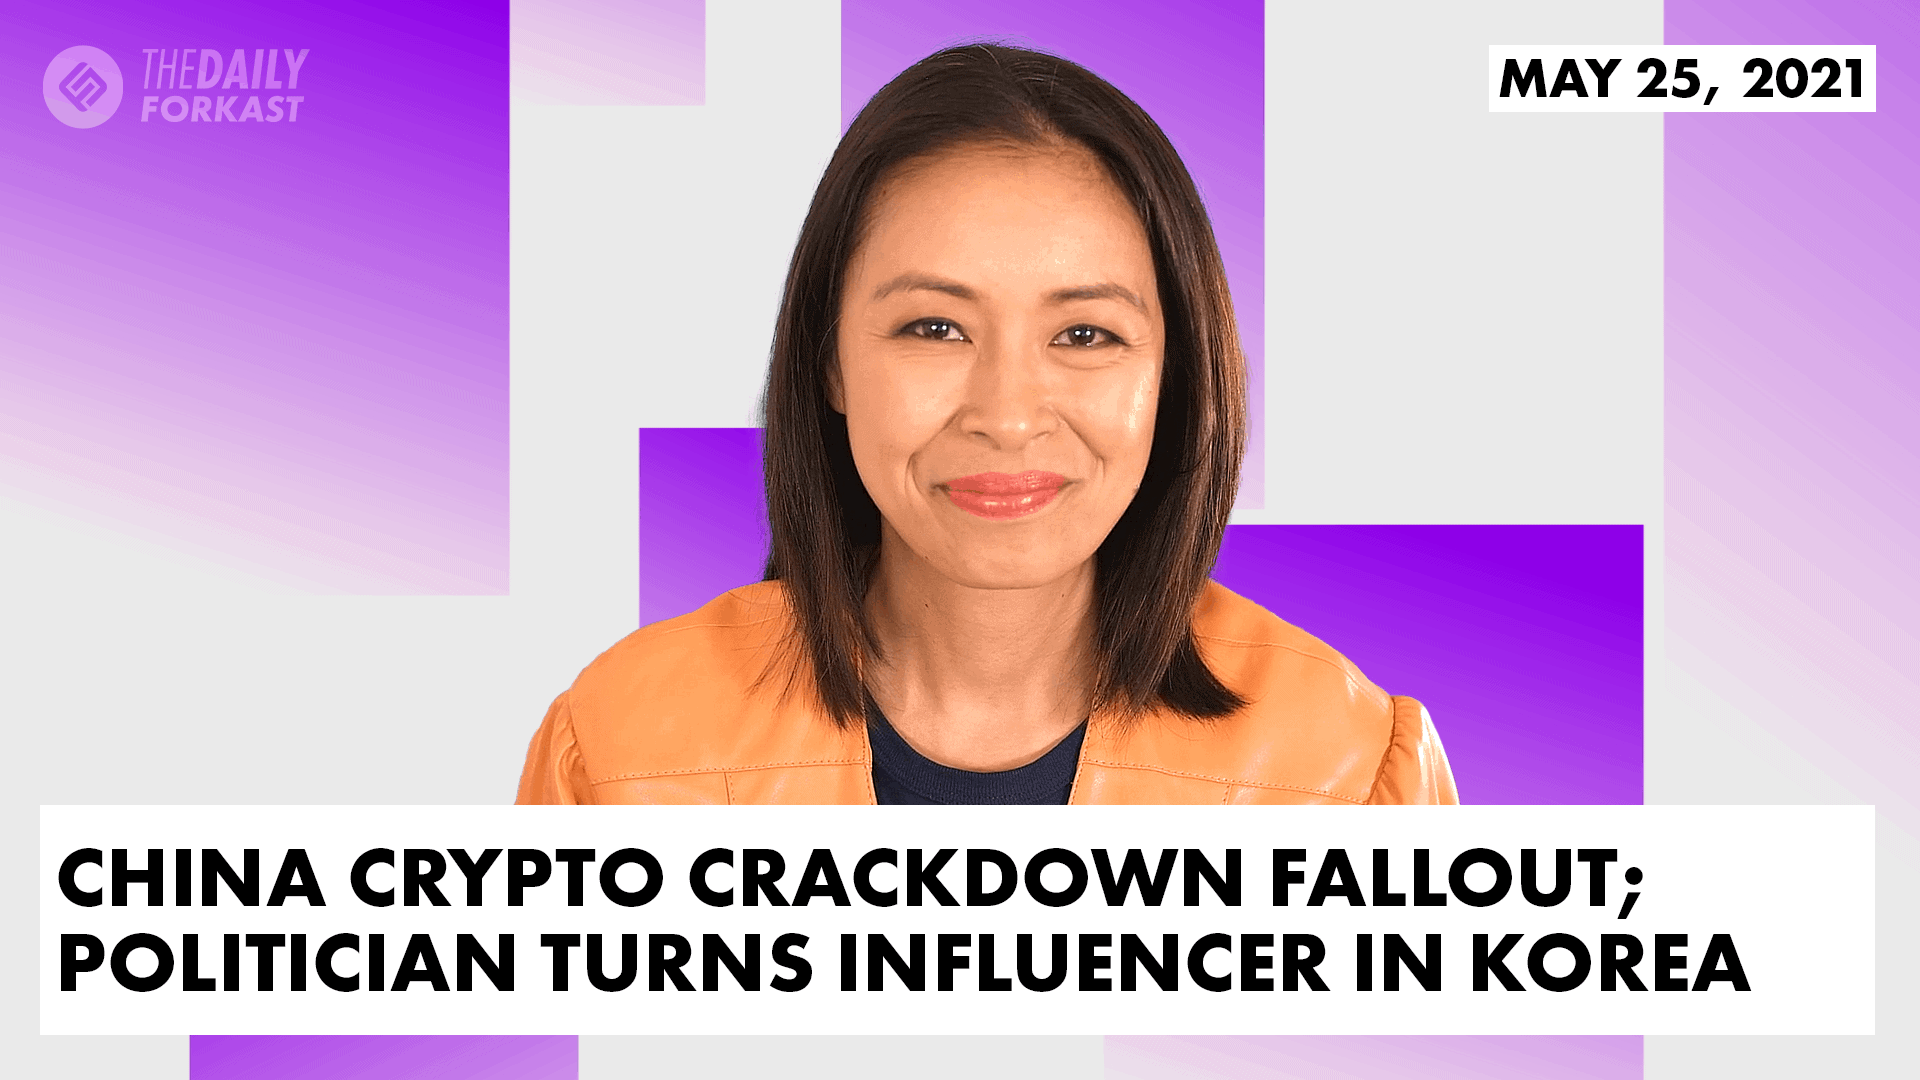 China crypto crackdown fallout Politician turns influencer in Korea